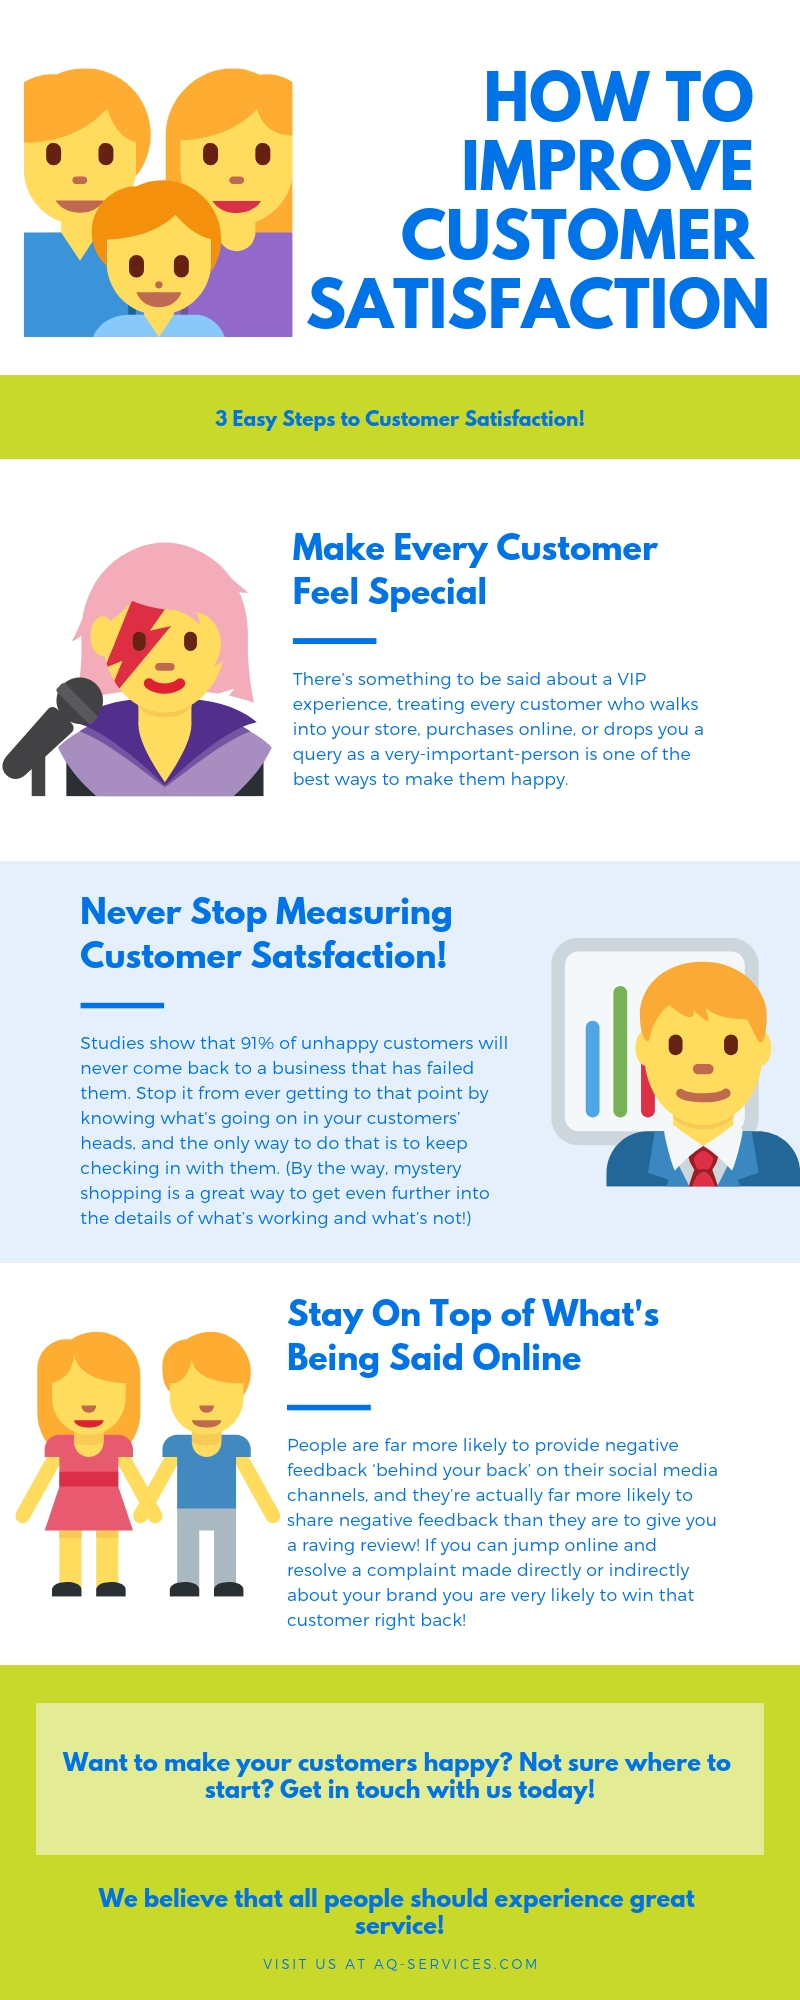 How to improve customer satisfaction in 3 easy steps